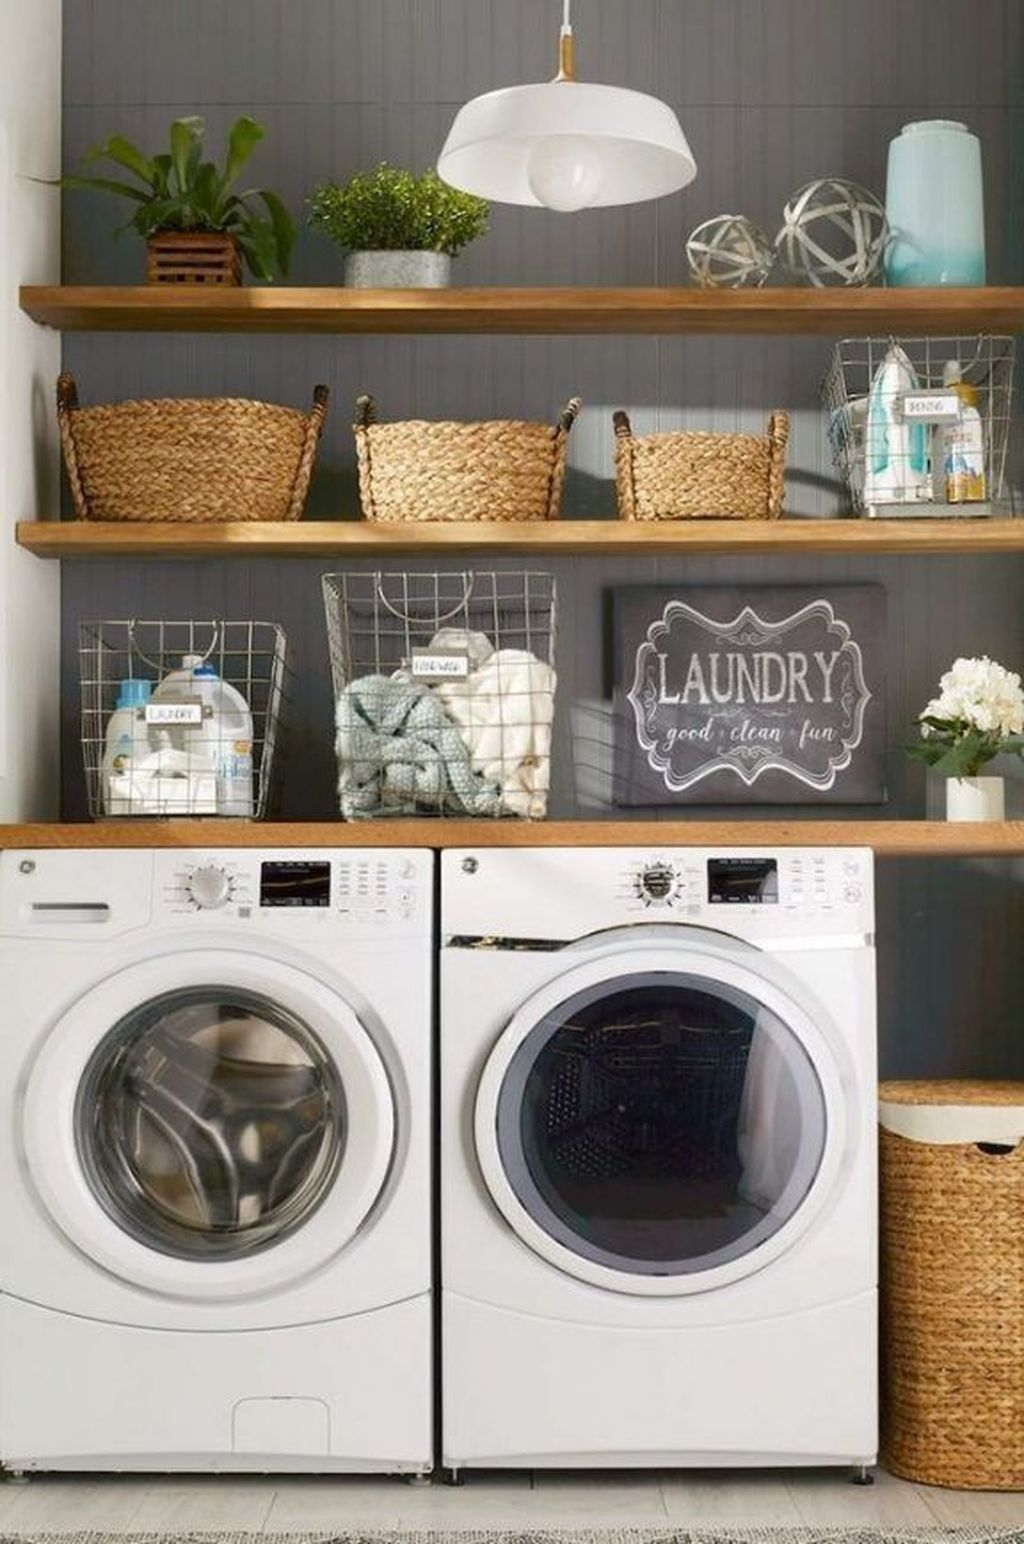 33 Minimalist Small Laundry Room Design And Decor Ideas